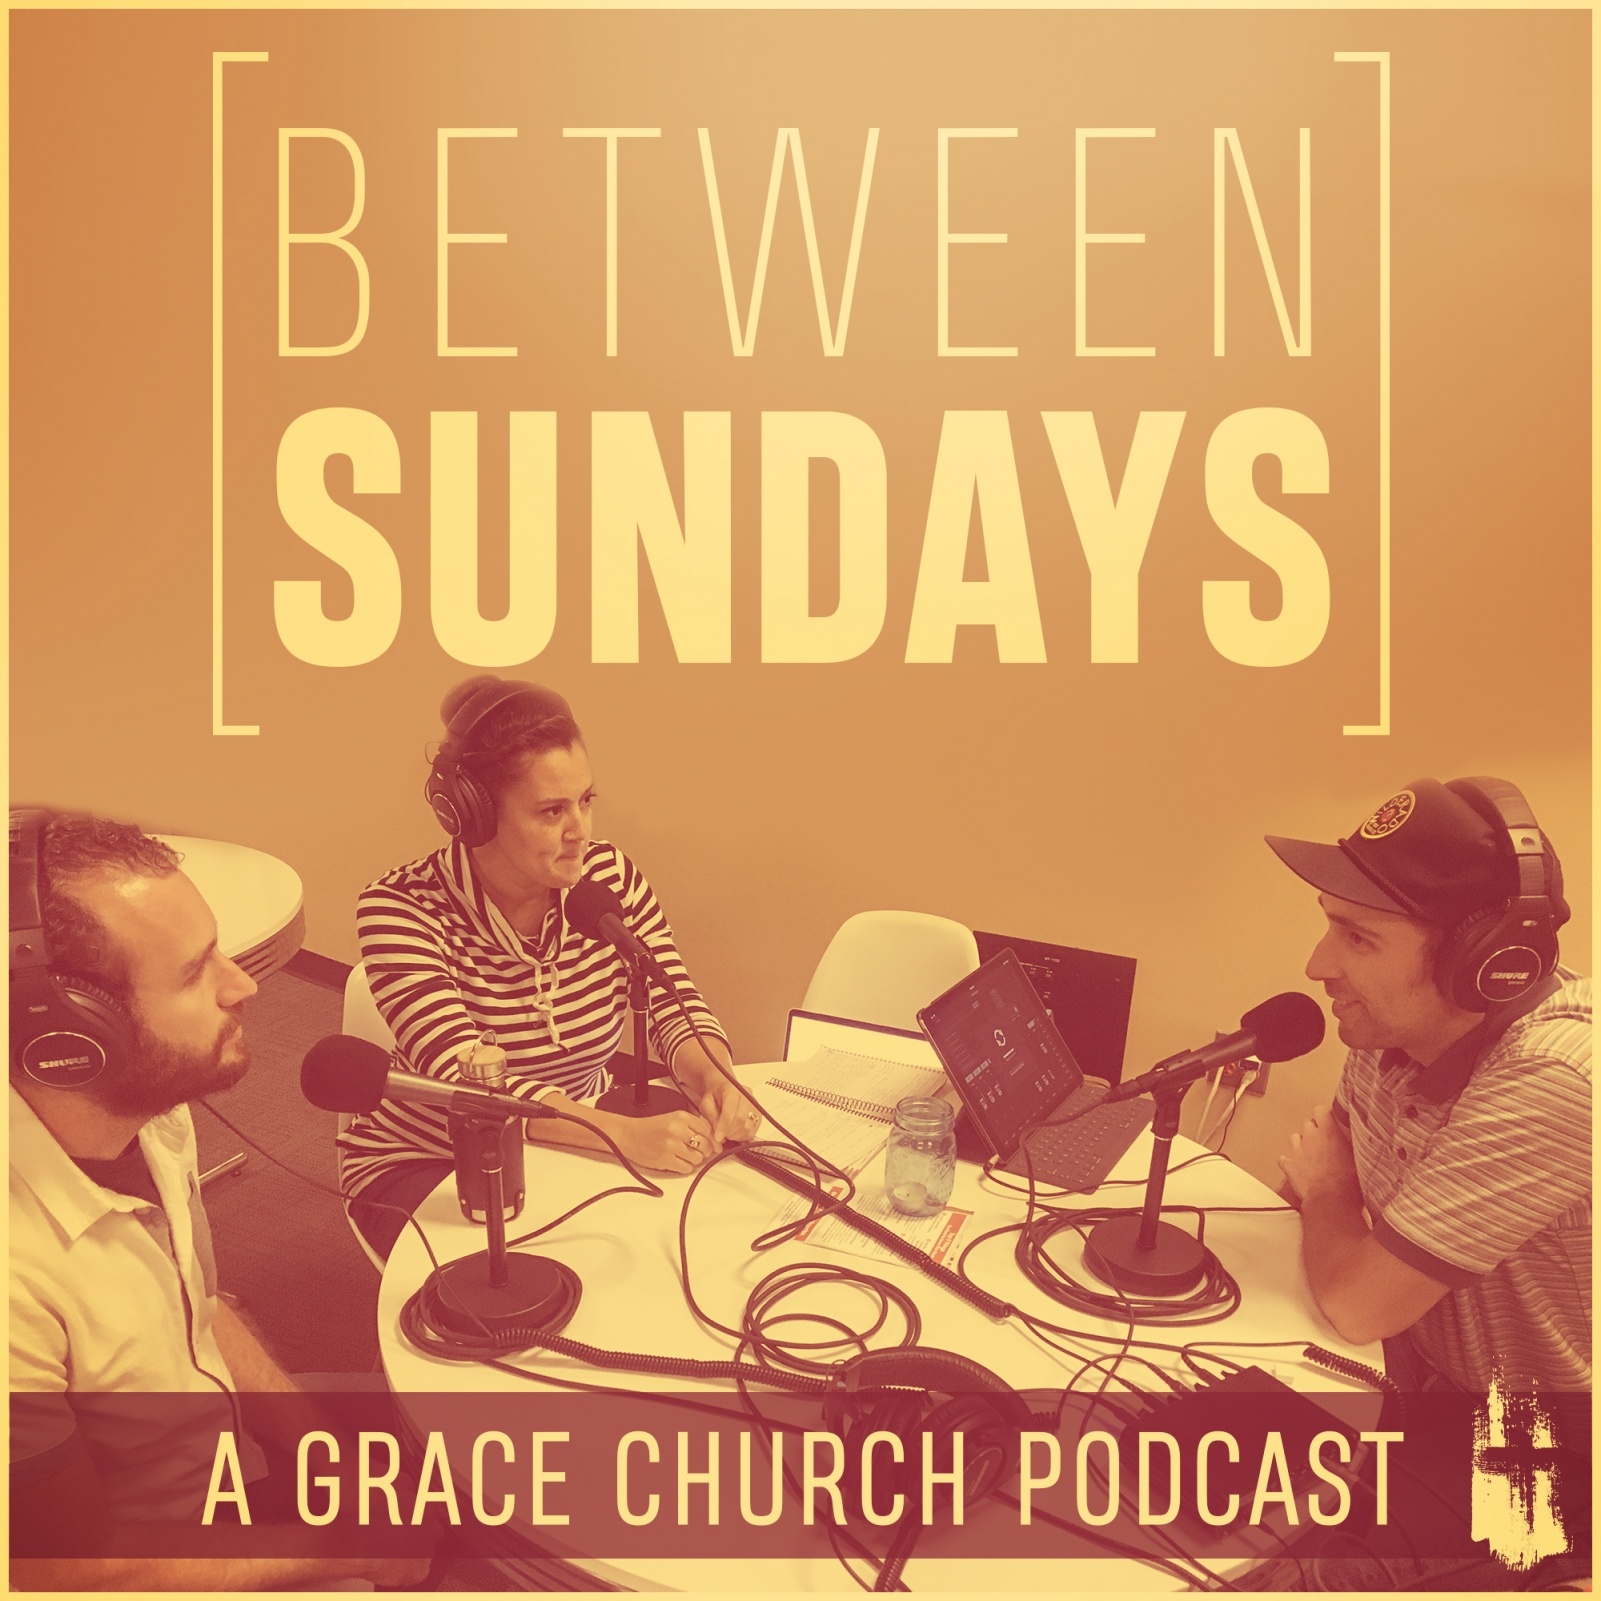 Between Sundays Episode 4 Singleness